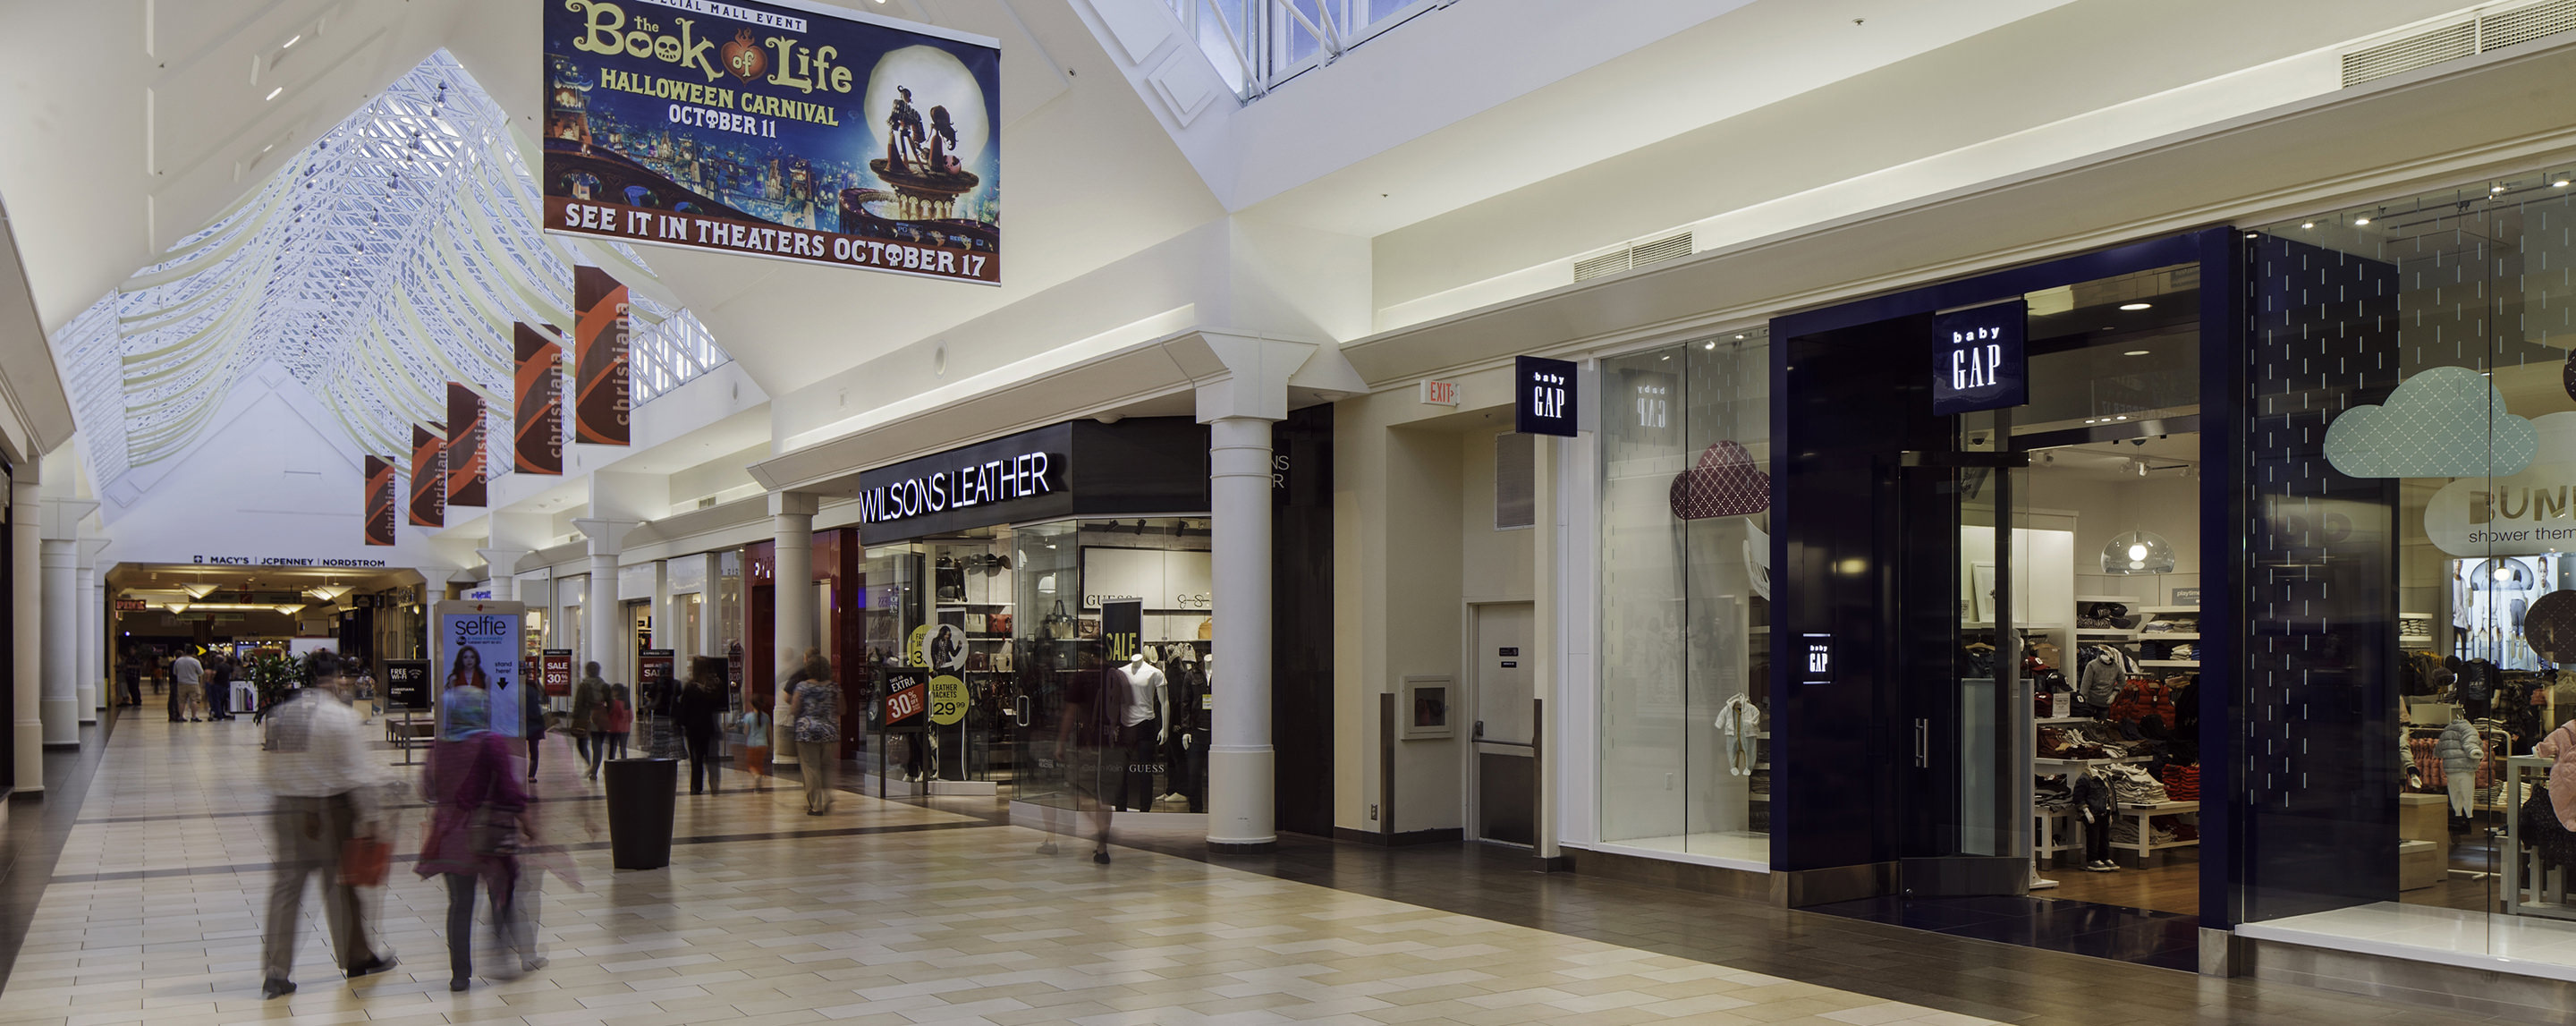 Inside the interior walkway of the Christiana Mall, shoppers look and walk into store fronts.